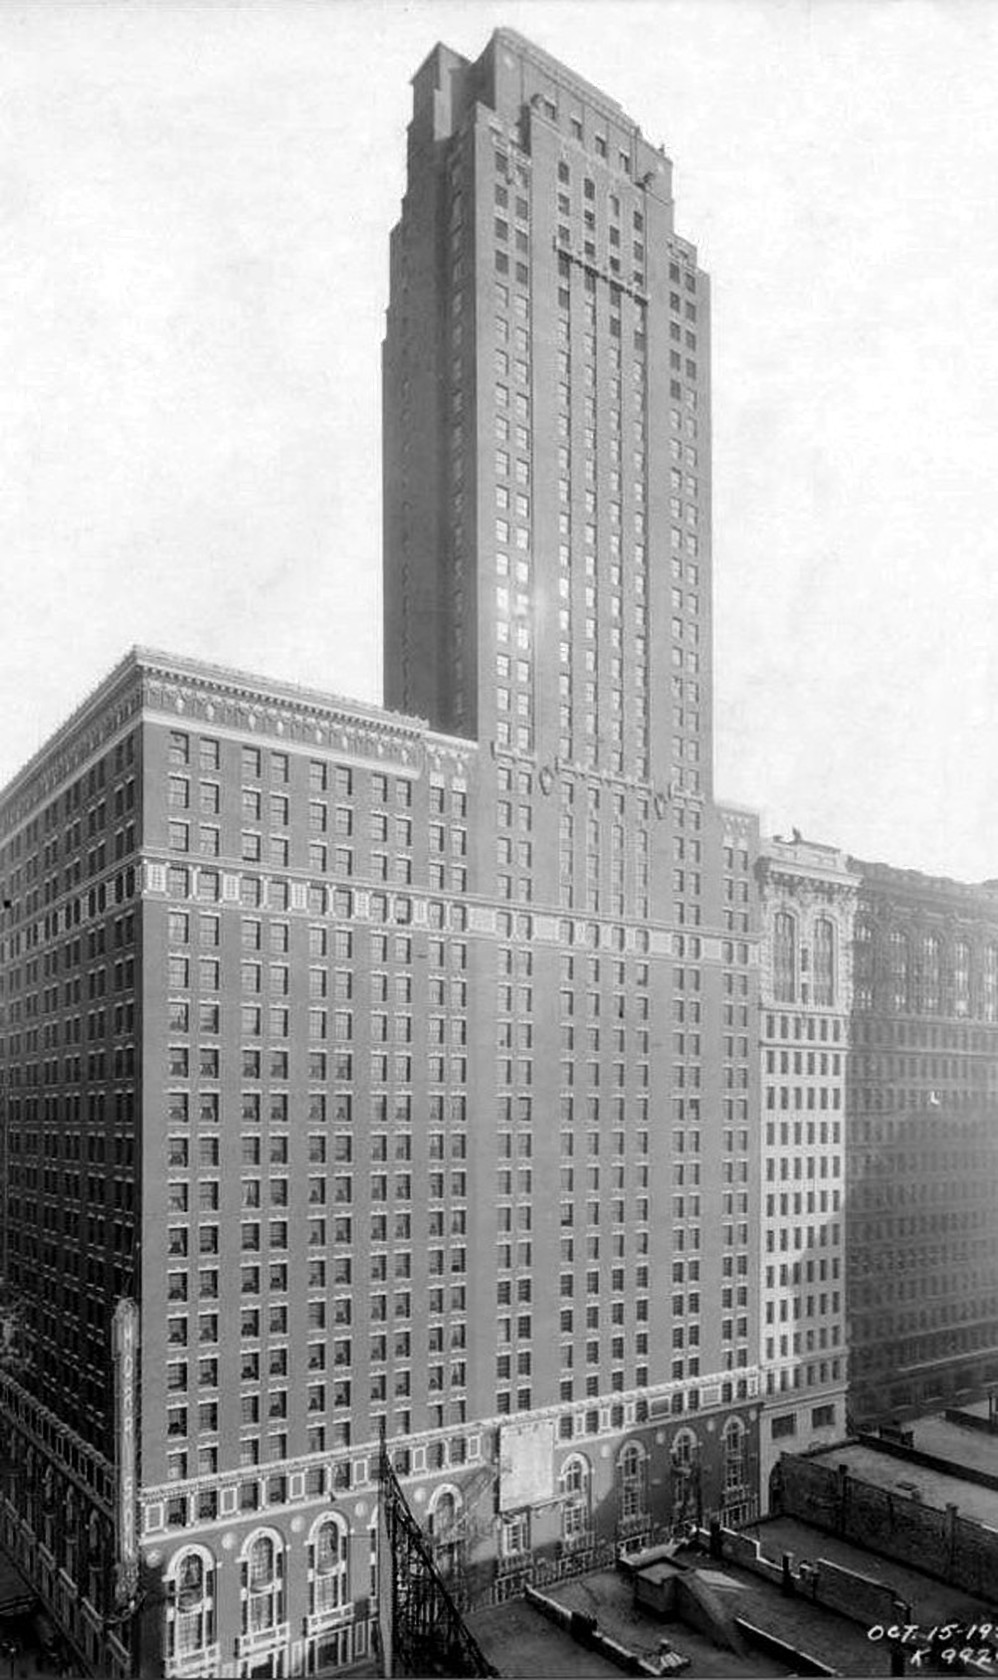 The 45-storey Morrison Hotel was completed in 1925.